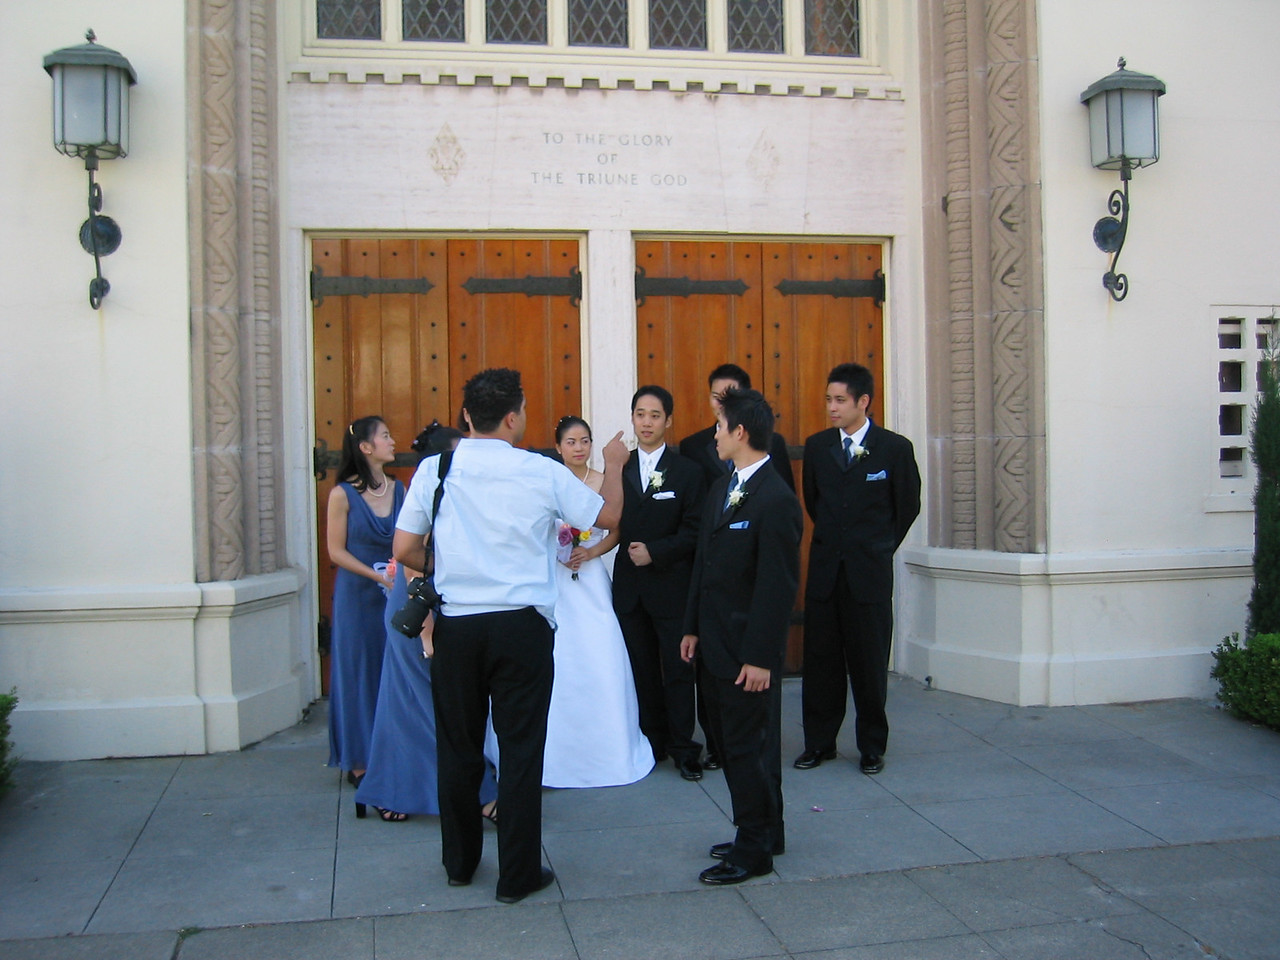 Photo shoot outside Grace Lutheran Church - photographer directs wedding party